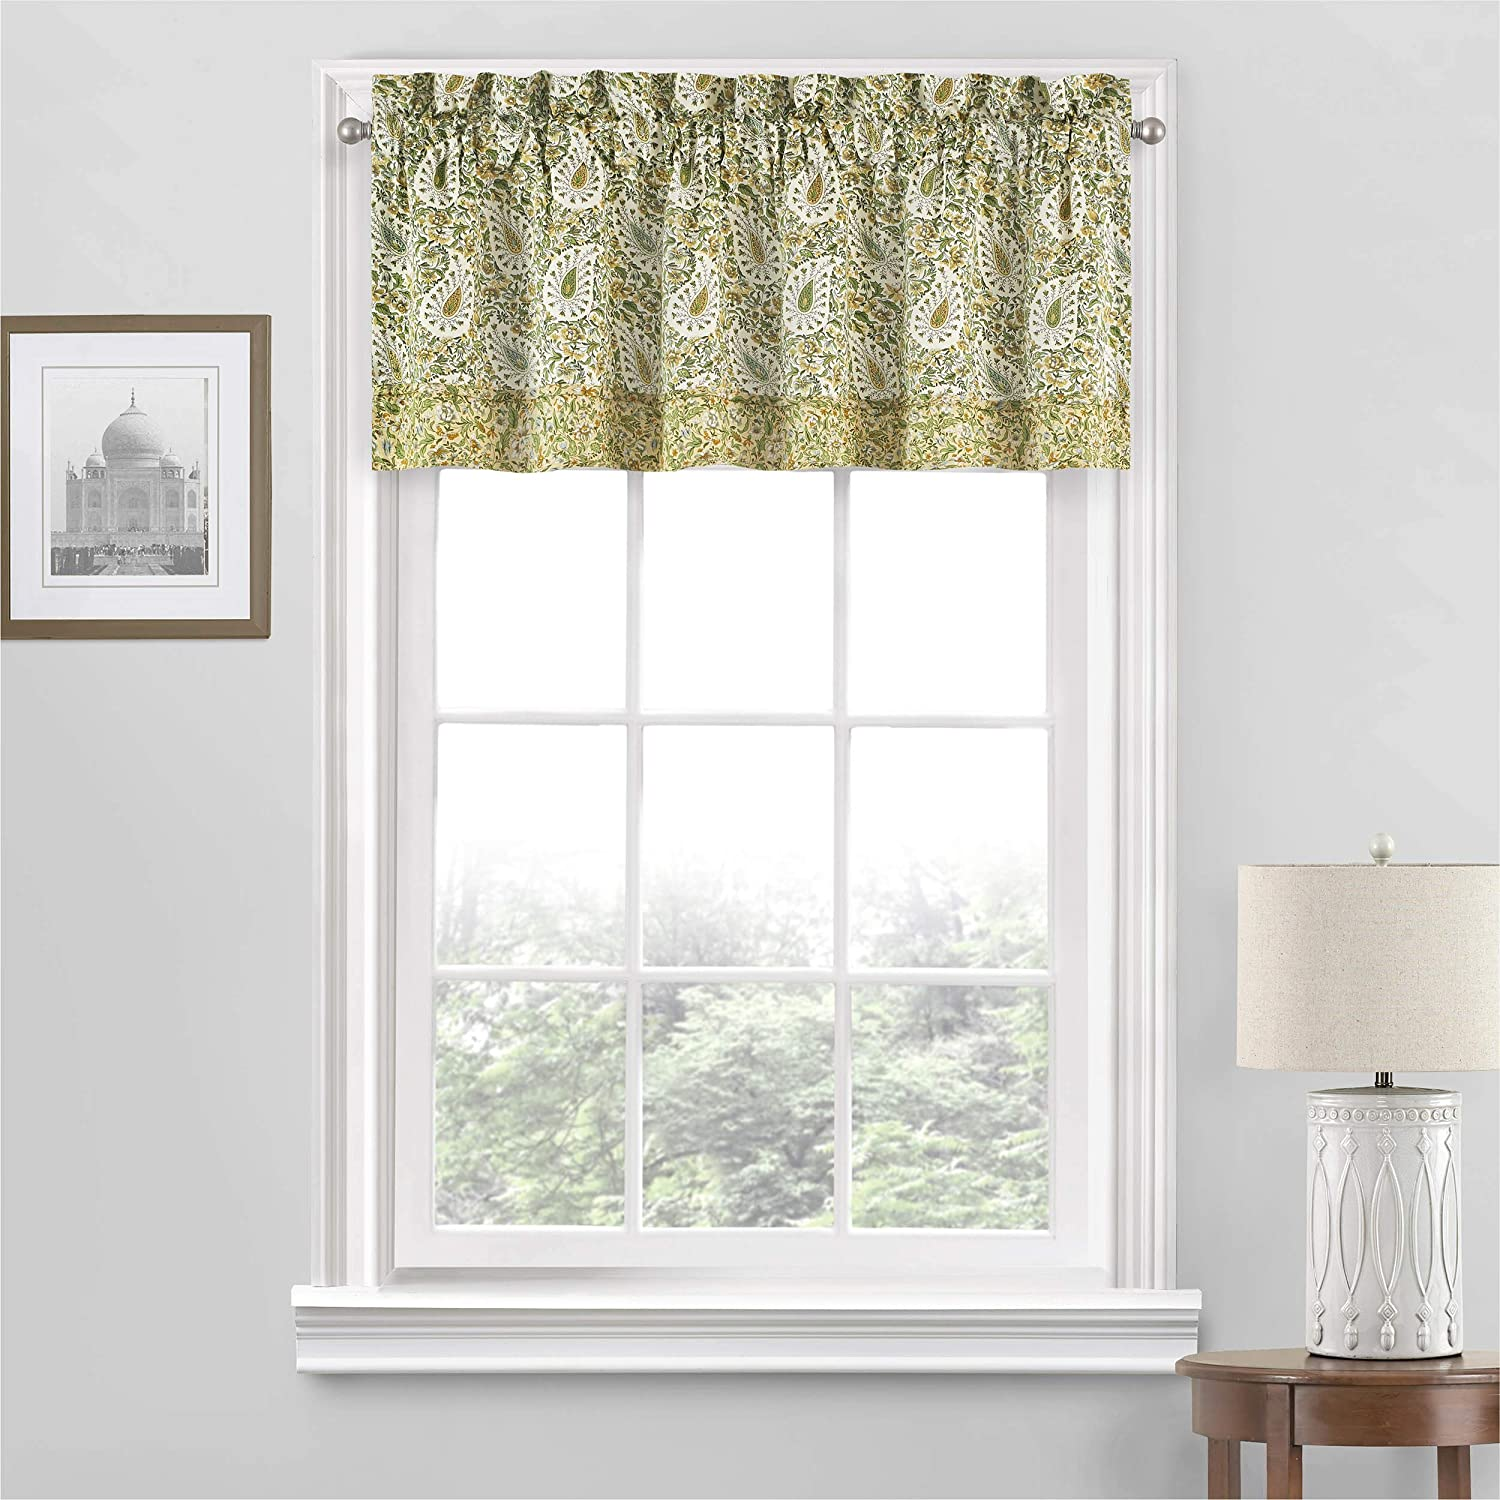 "Waverly Paisley Verveine Short Valance Small Window Curtains Bathroom, Living Room and Kitchens, 52"" x 18"", Spring"